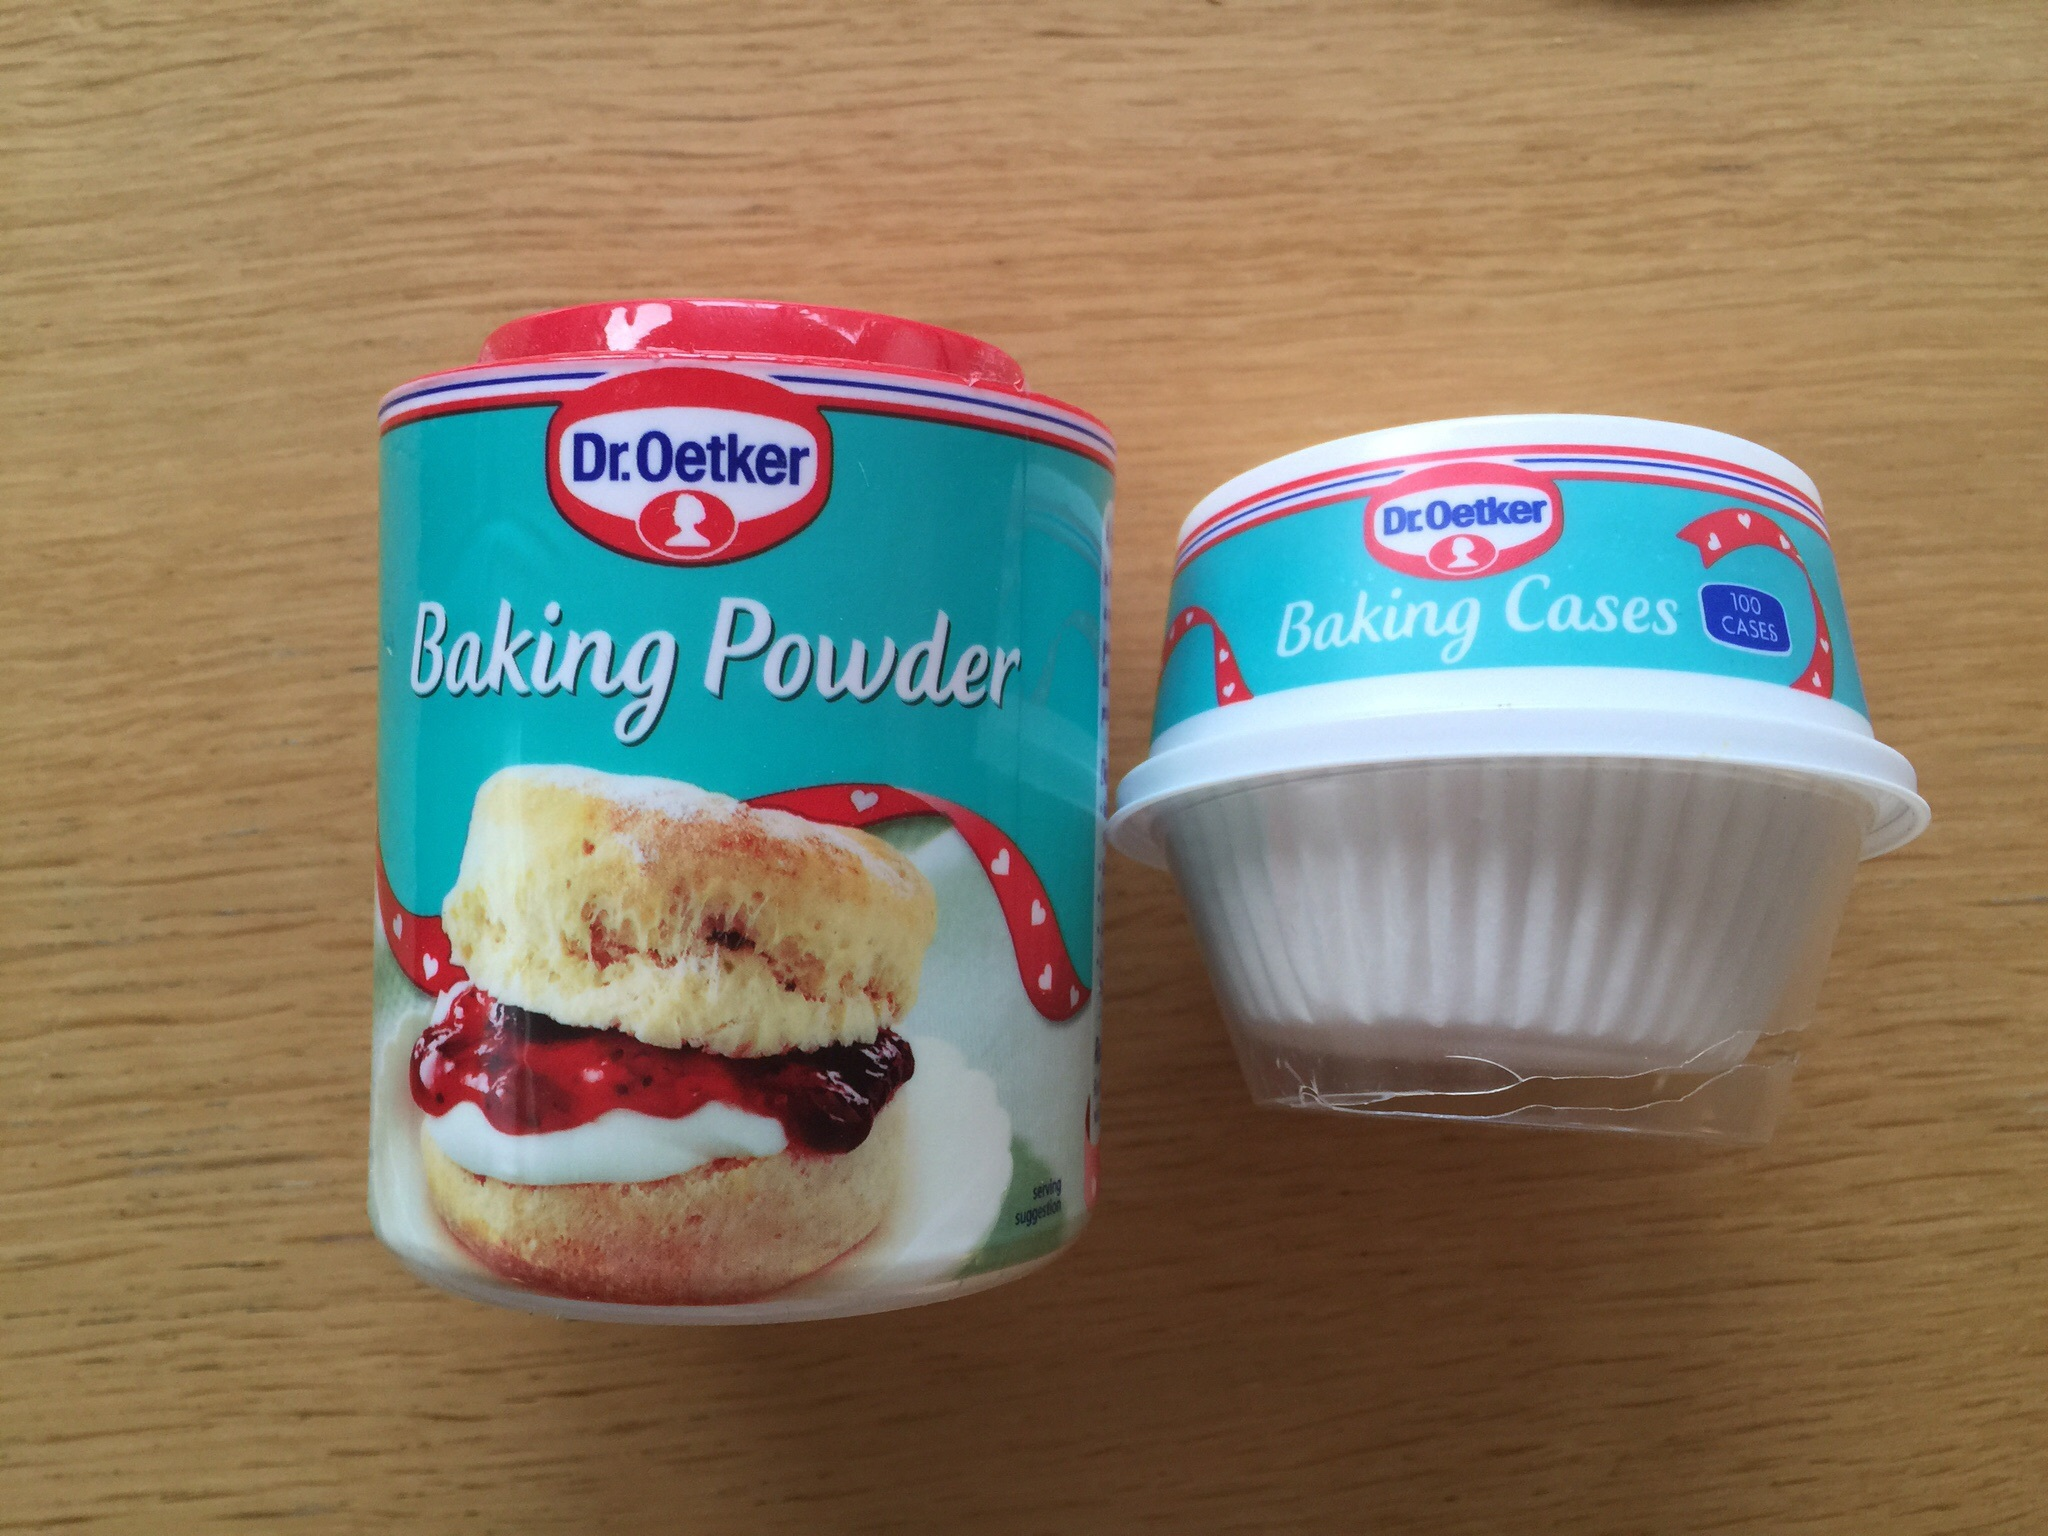 Baking powder and cupcake liners